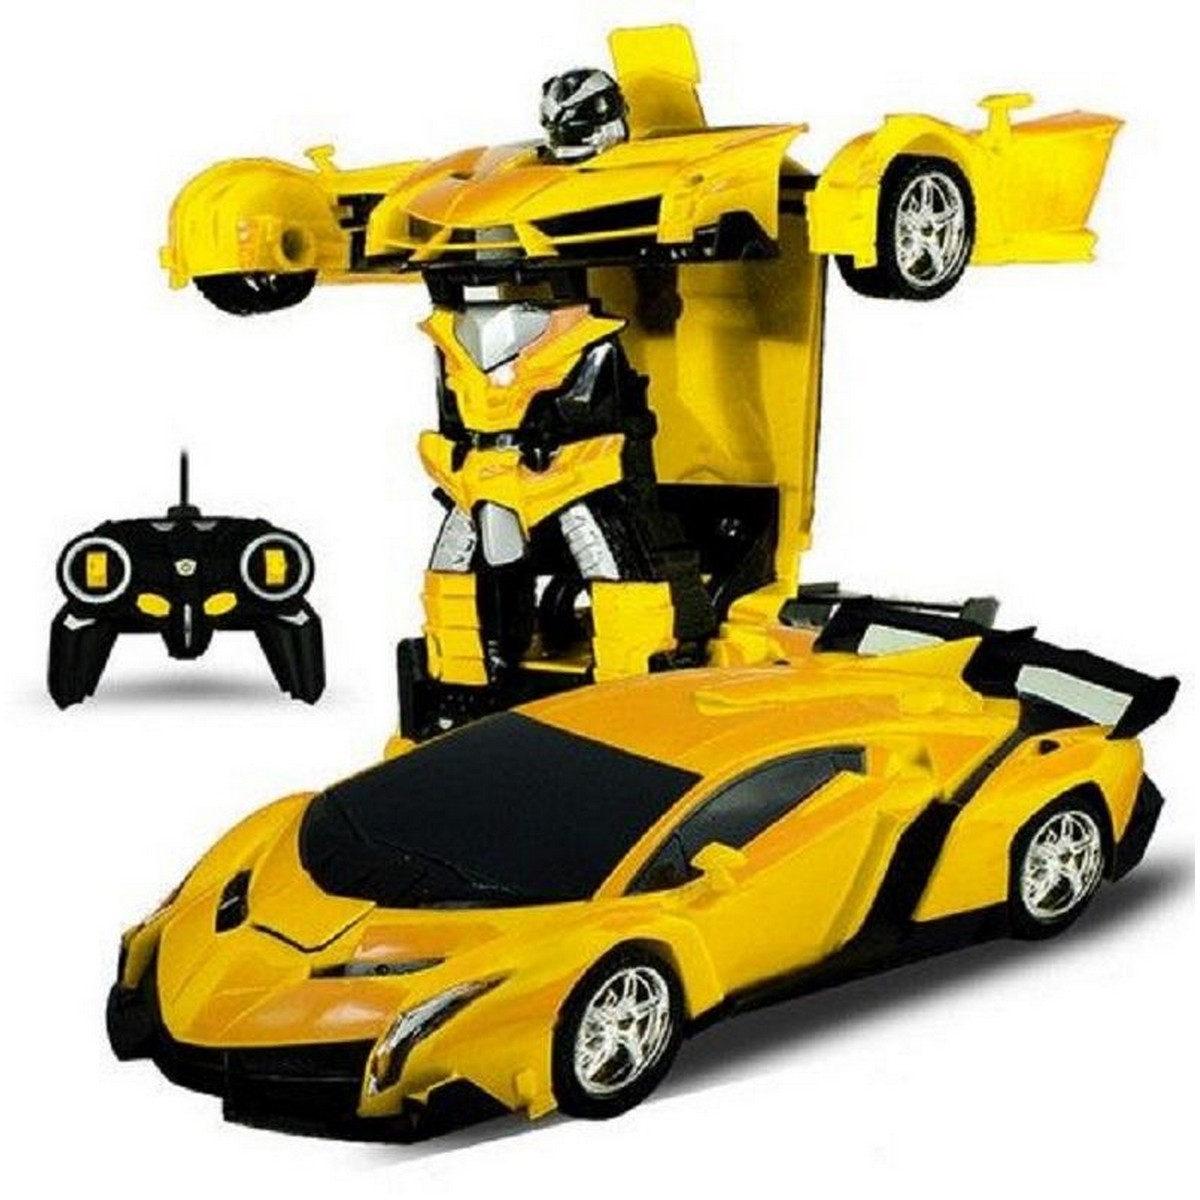 Rc Transformer Car Chargeable Toy Remote Control